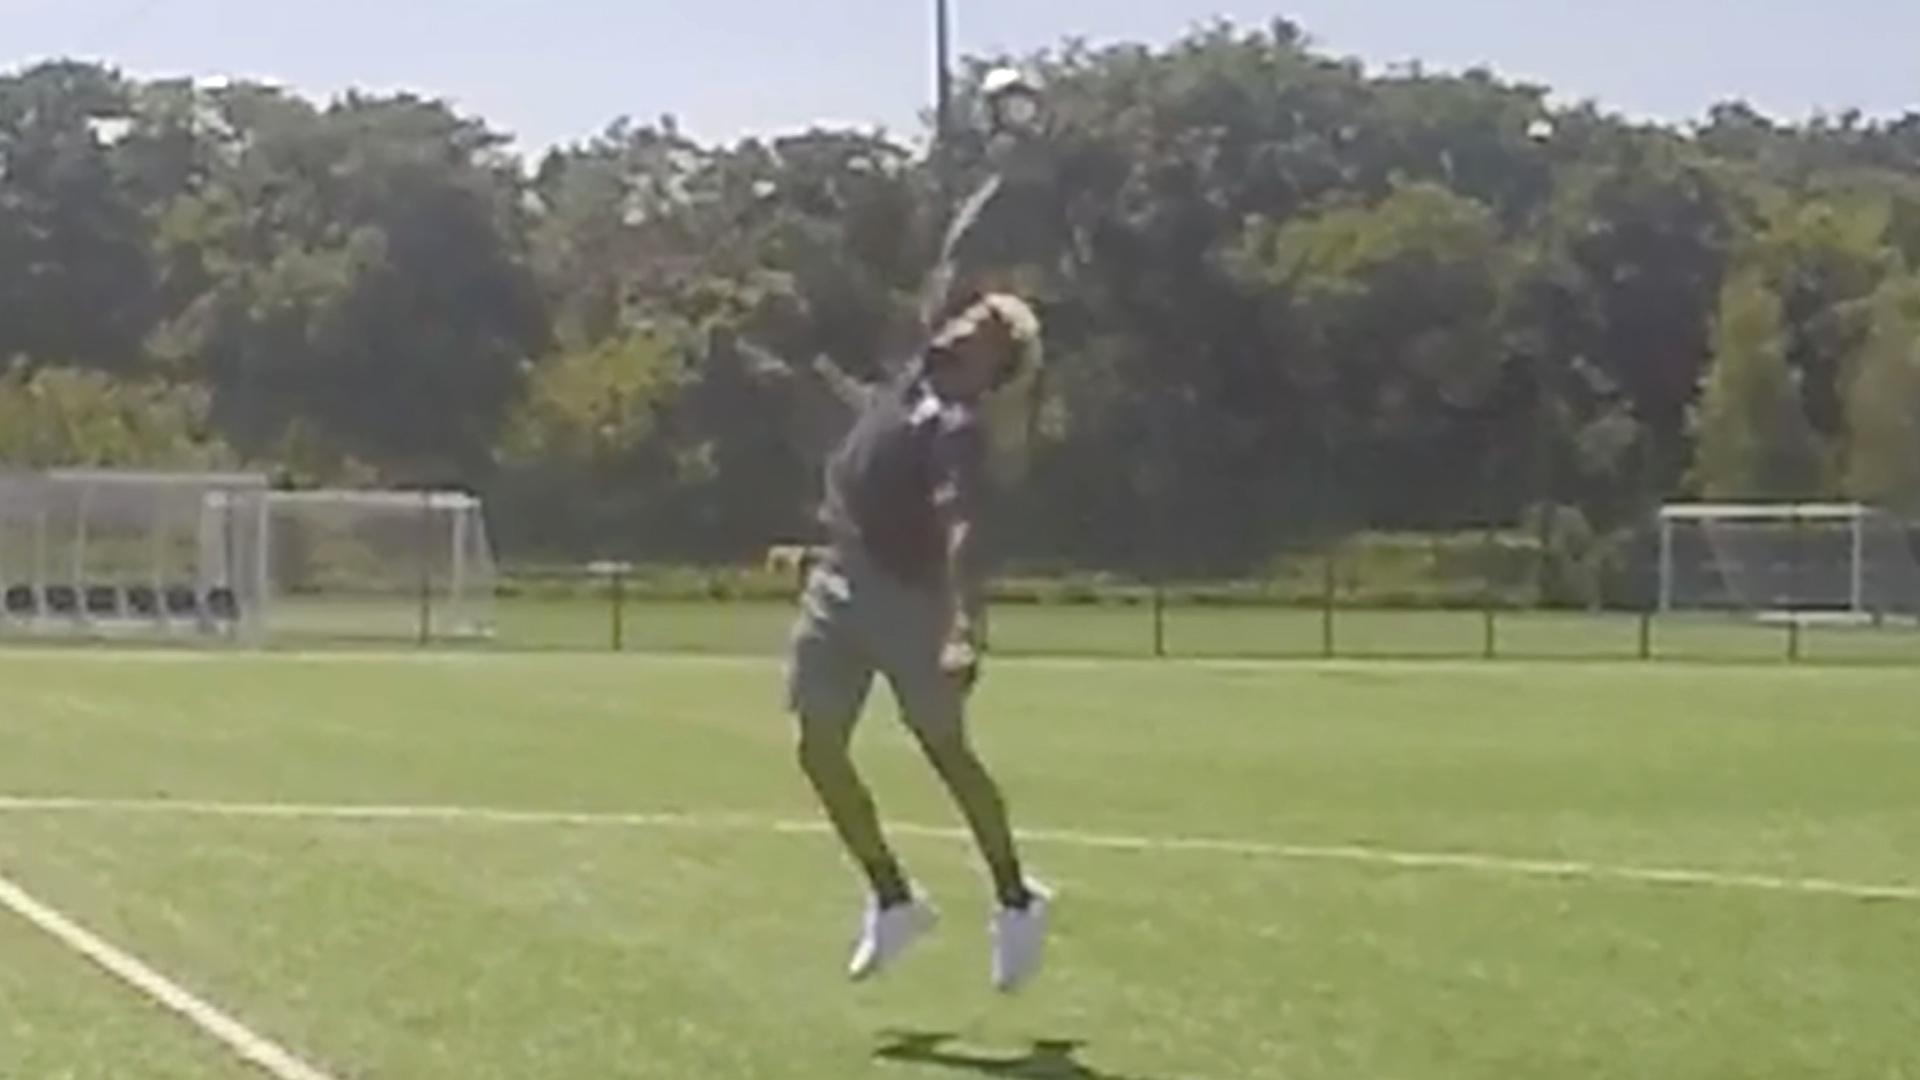 Odell Beckham Jr. Shows Off One-Handed Soccer Ball Catch